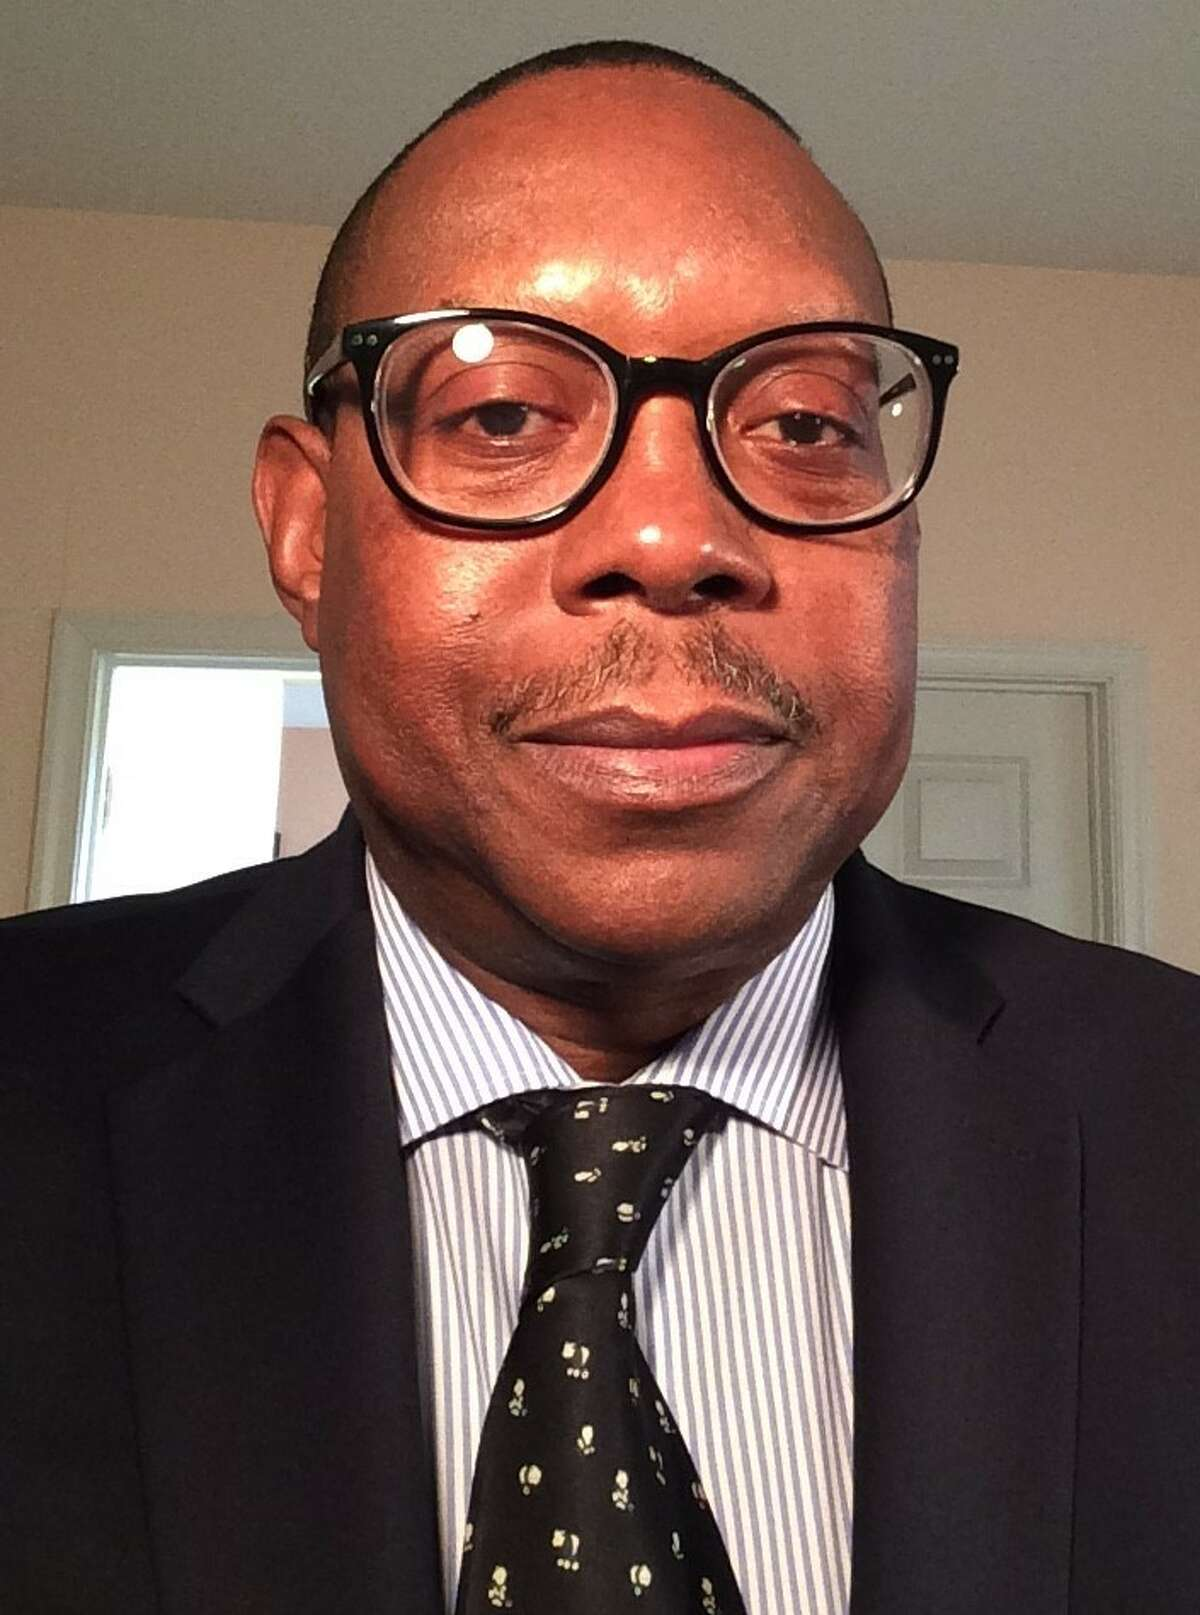 Harold Jackson, editorial page editor of the Philadelphia Inquirer since 2007, will also join the Chronicle's editorial board in the next month in a role still to be determined, Barnes said. Jackson won the Pulitzer Prize for Editorial Writing in 1991 and was a finalist in 1994.